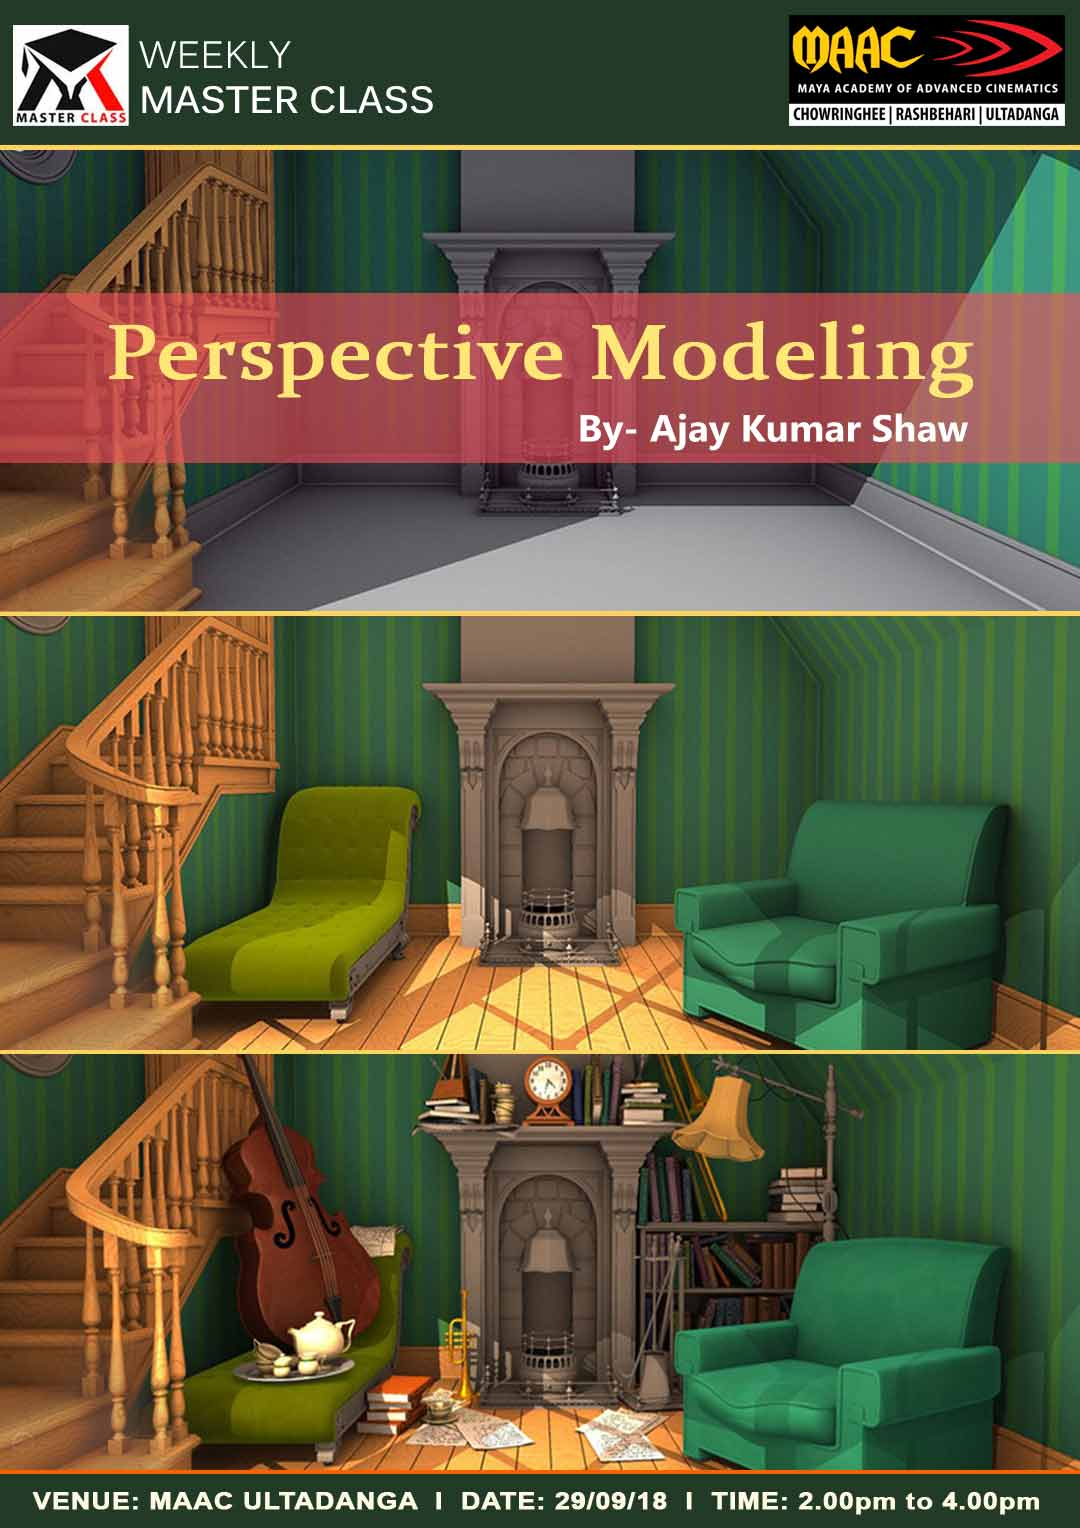 Weekly Master Class on Perspective Modeling